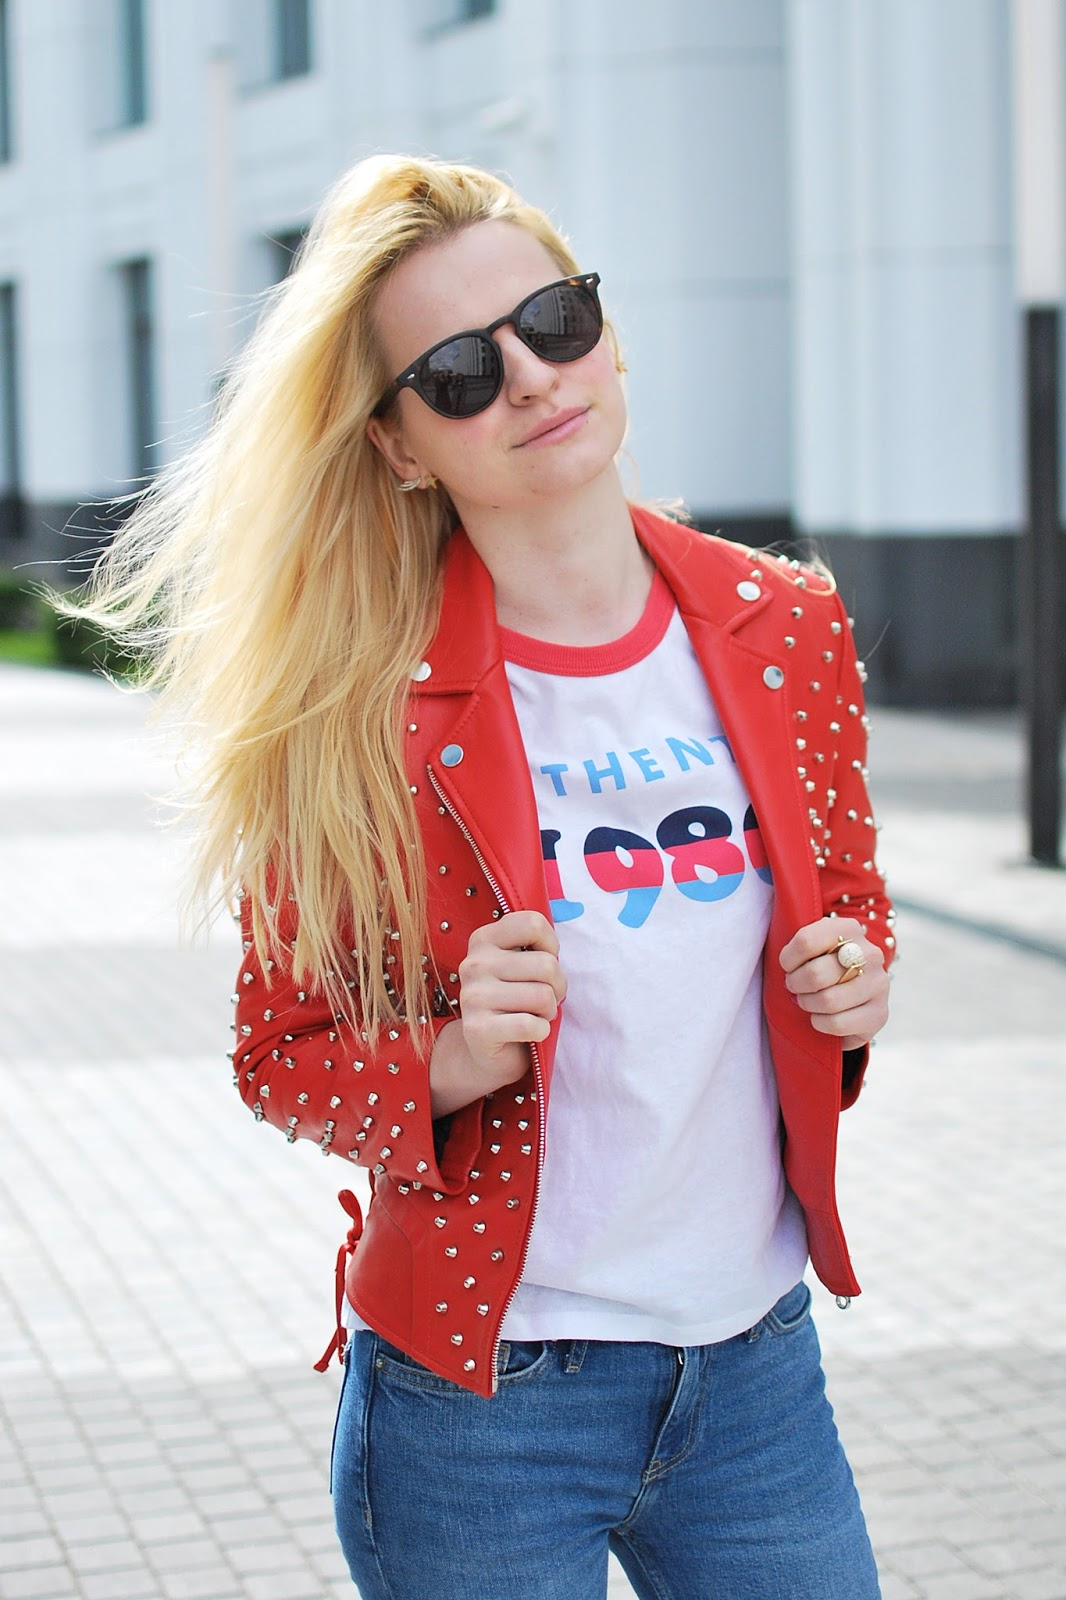 how to wear red jacket, moda popular, jeans outfit jacket,fashion trends jacket